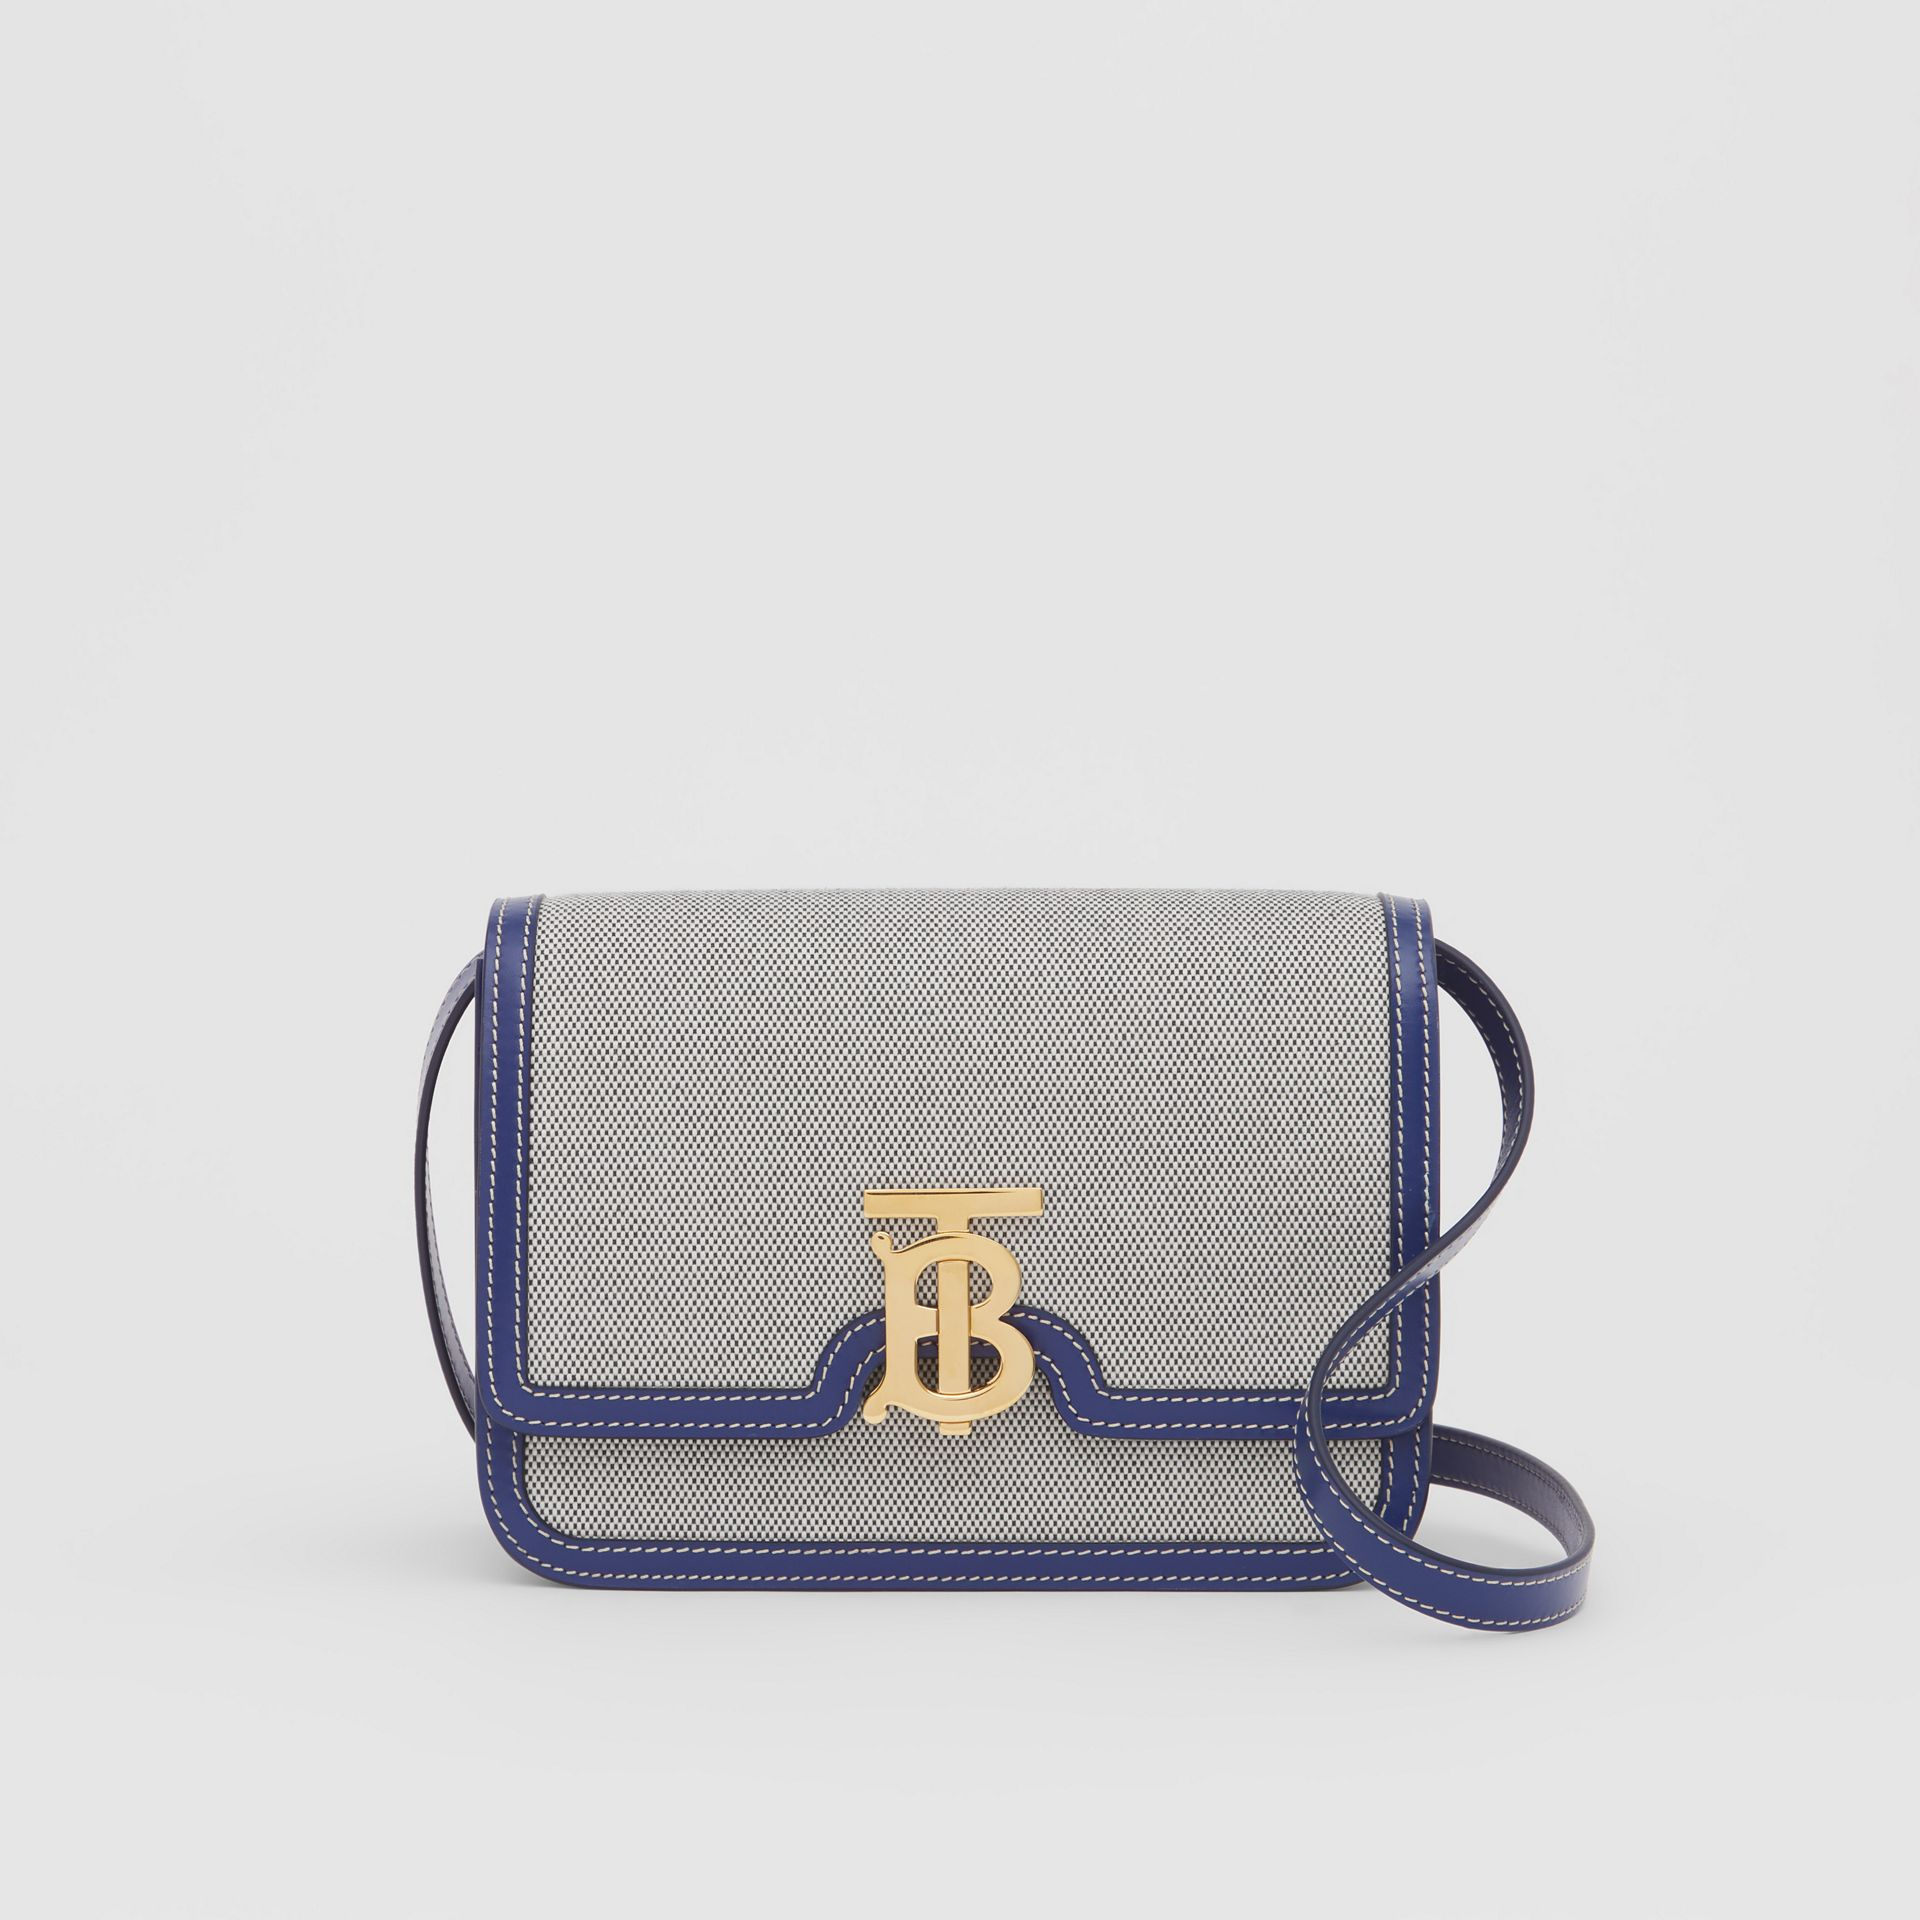 Small Two-tone Canvas and Leather TB Bag in Ink Navy - Women | Burberry - gallery image 0